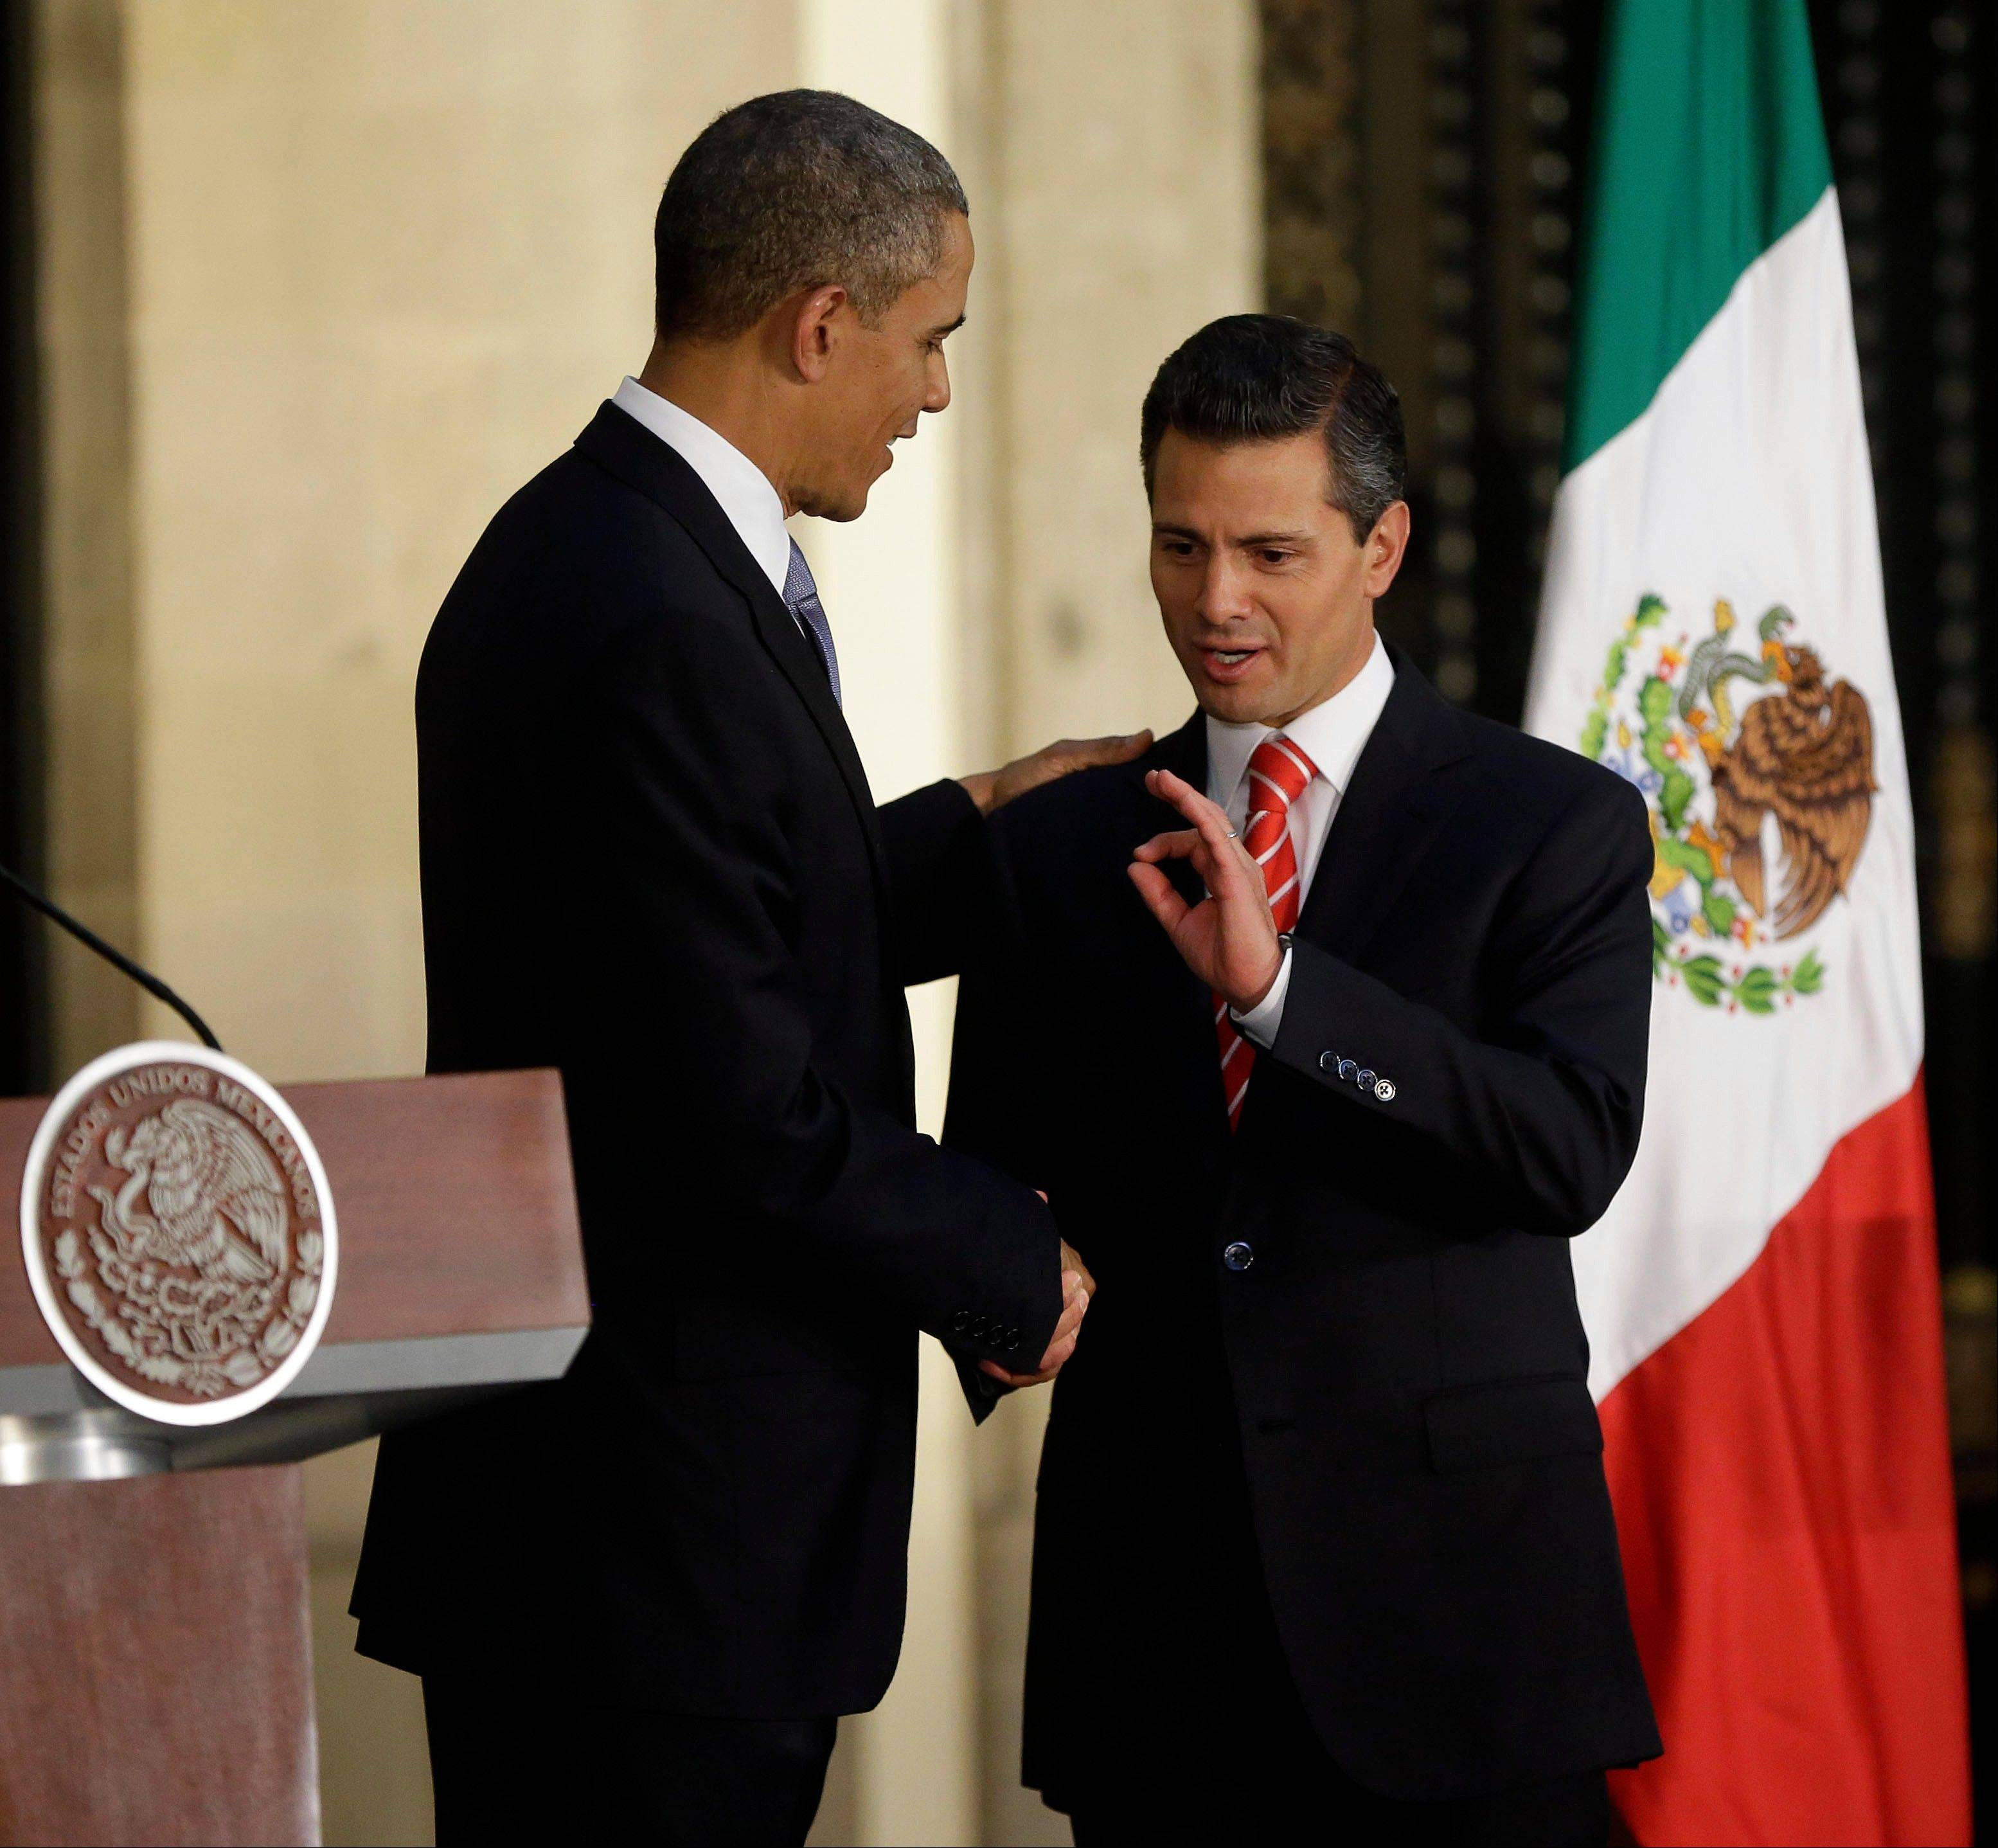 President Barack Obama said his administration will continue its close cooperation with Mexico to battle drug trafficking and organized crime even as Mexican President Enrique Pena Nieto, right, moves to restrict access by U.S. security agencies.